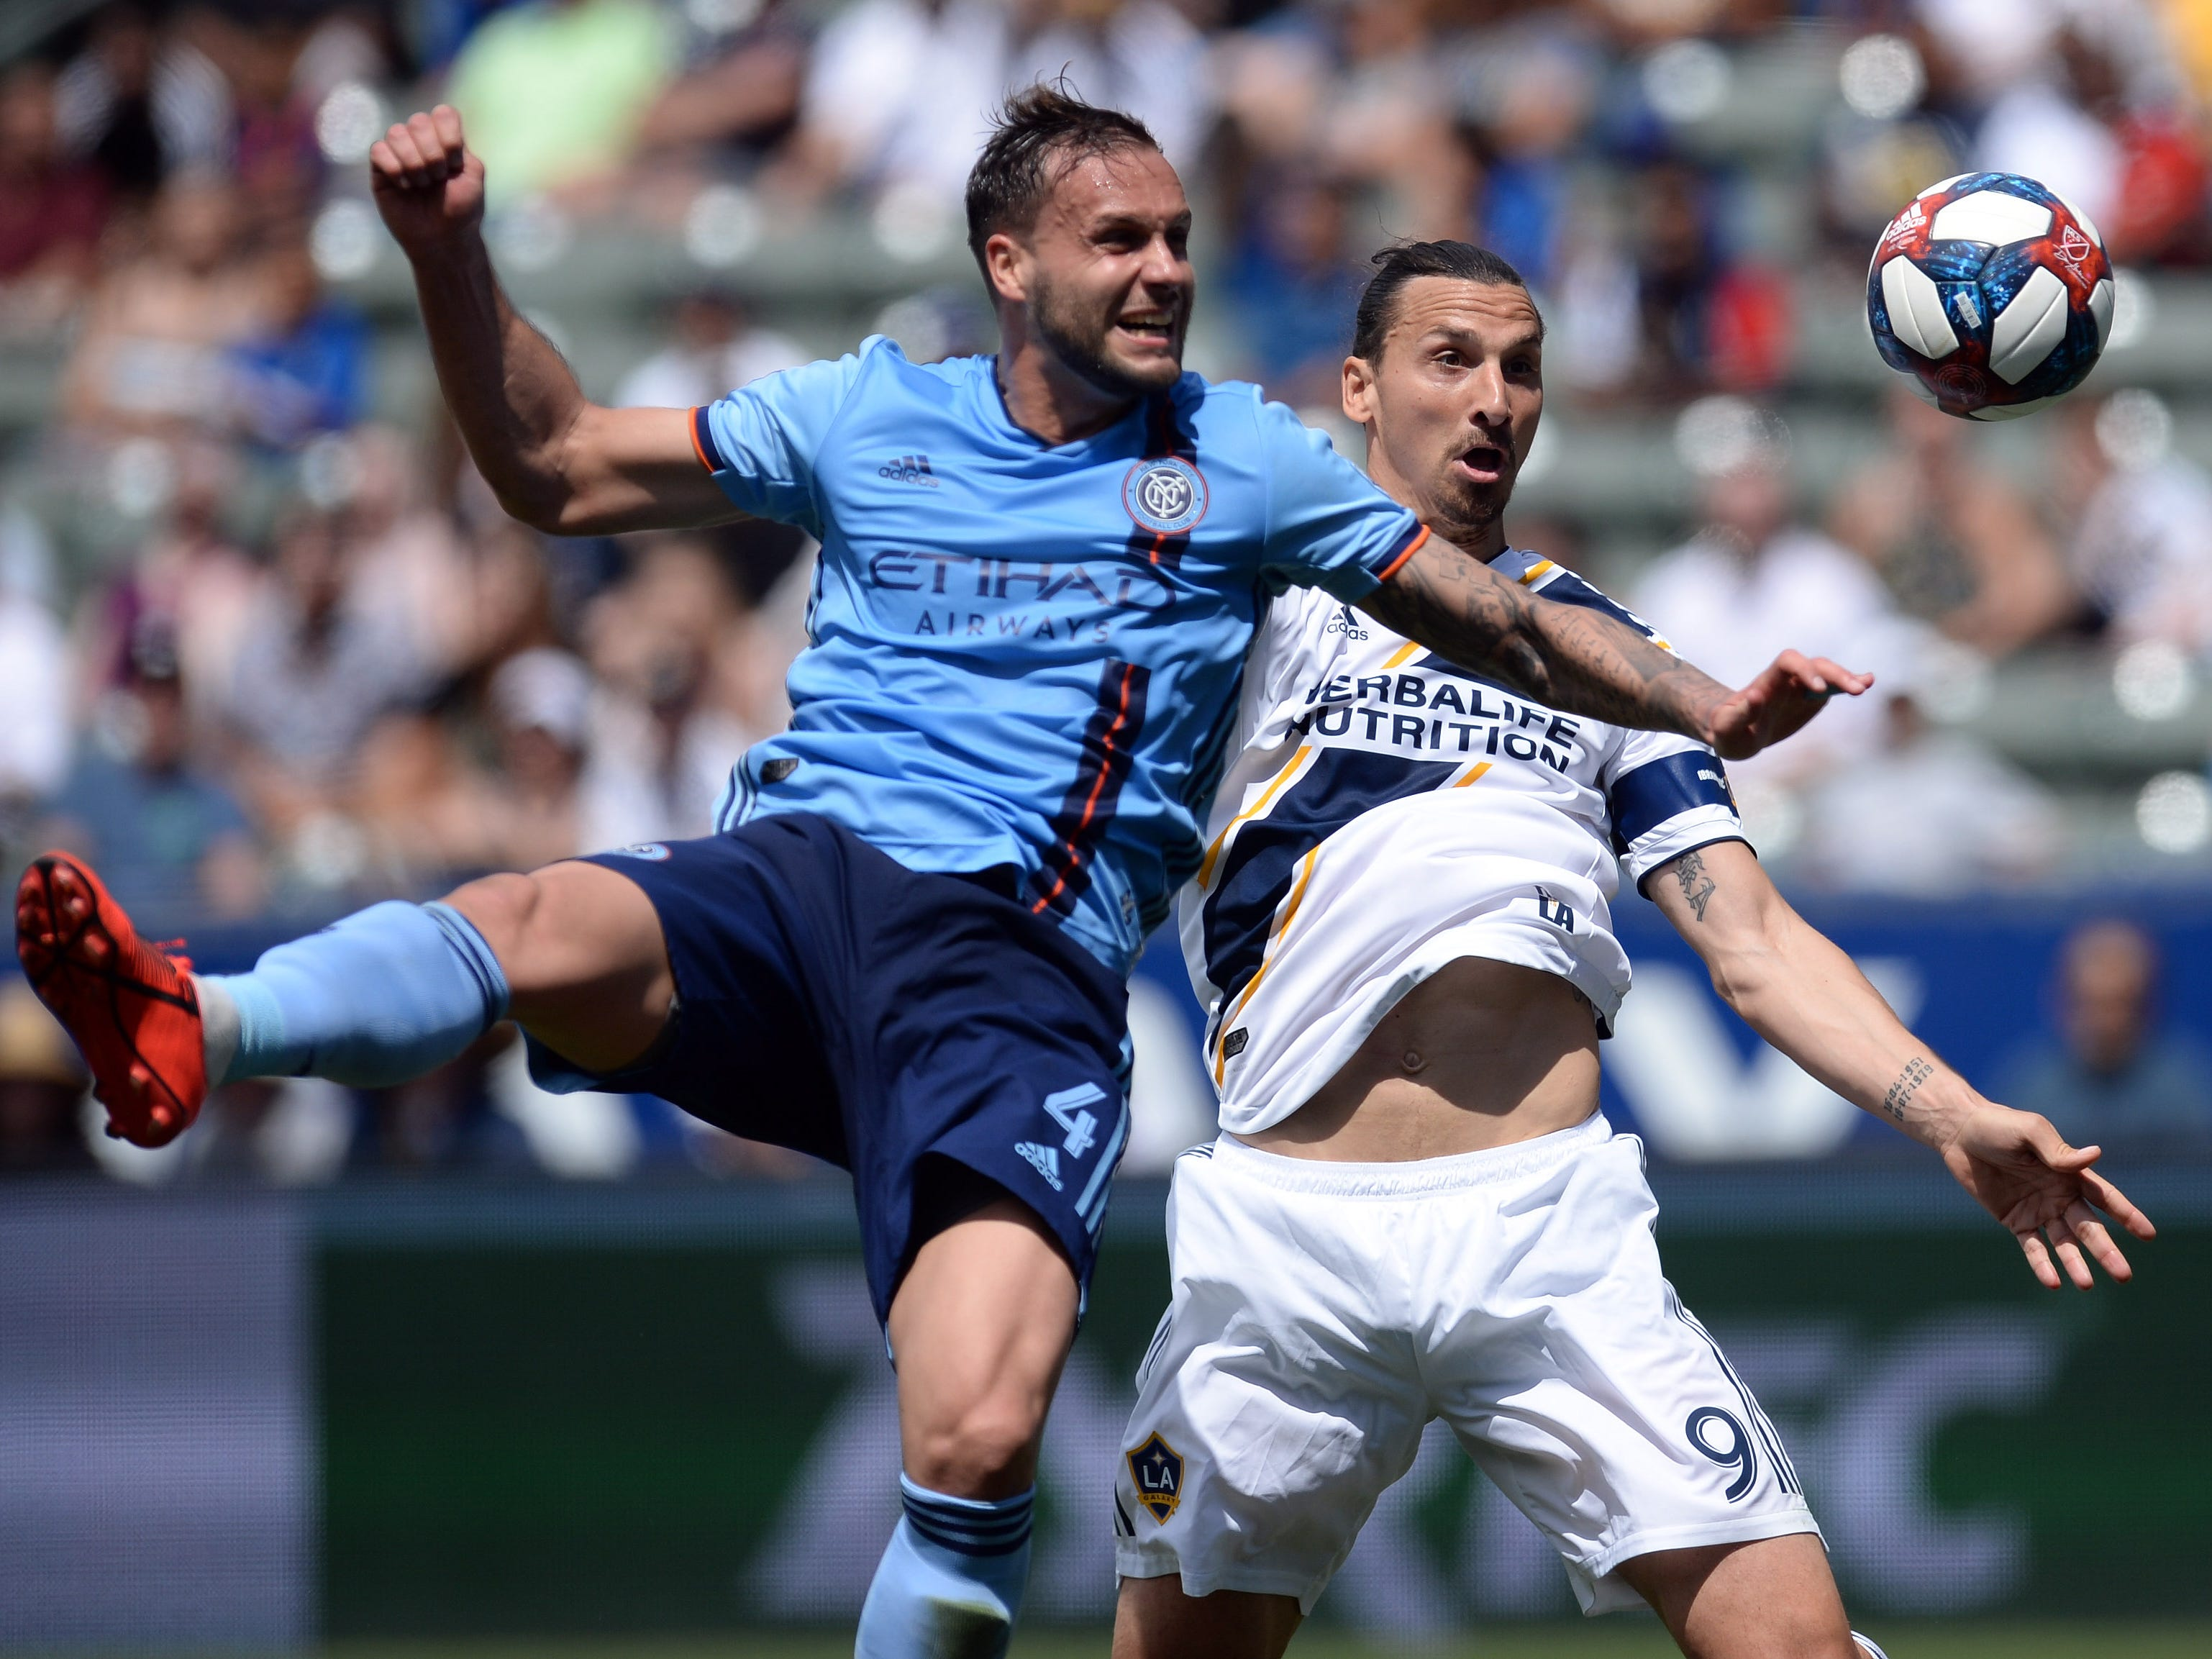 May 11:  Los Angeles Galaxy forward Zlatan Ibrahimovic (9) plays for the ball against New York City defender Maxime Chanot (4) during the second half at StubHub Center. NYCFC won the game, 2-0.